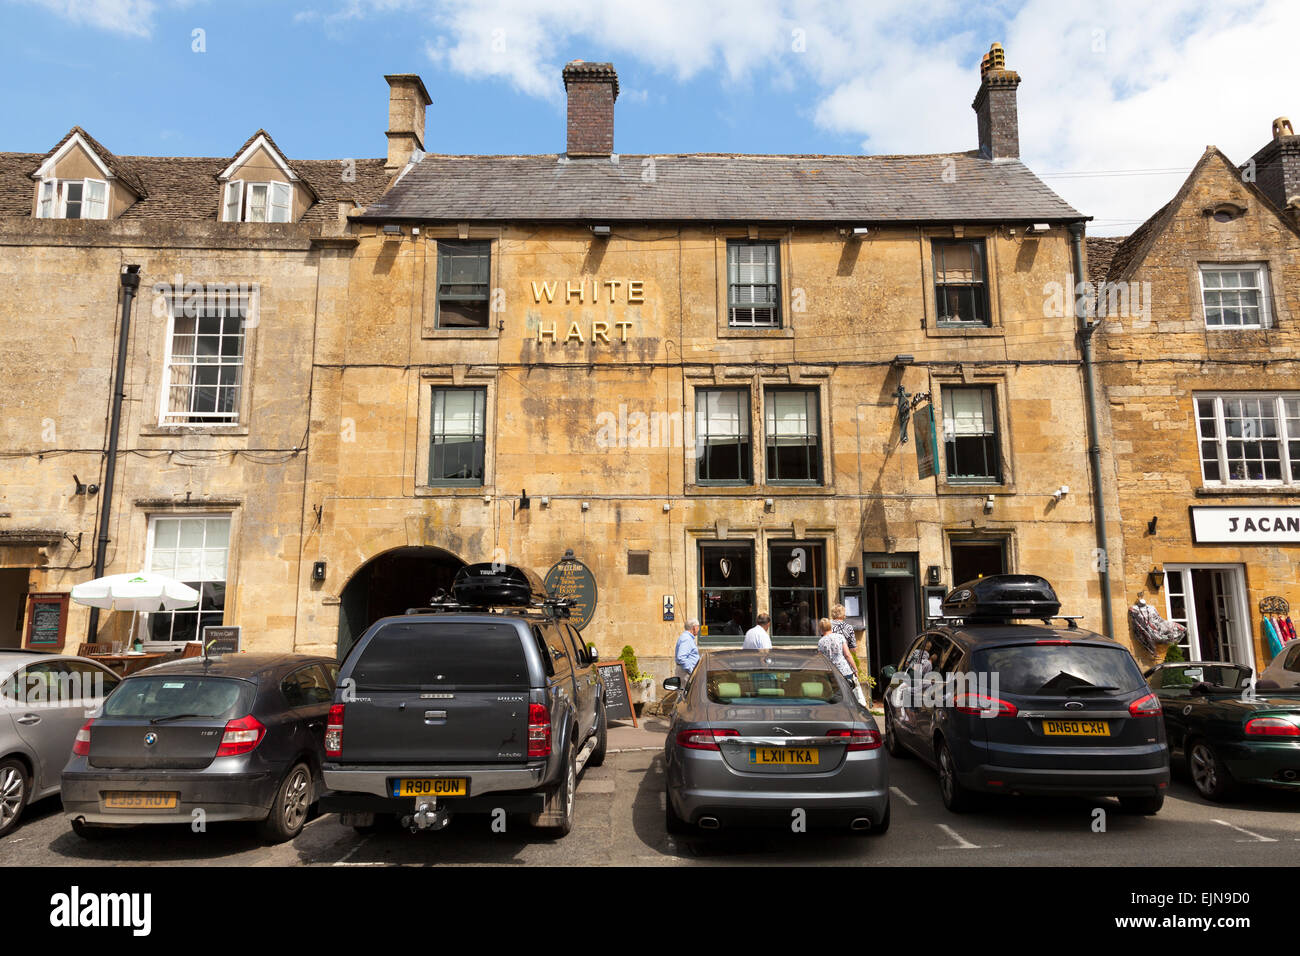 The White Hart, Stow-on-the-Wold, The Cotswolds, Gloucestershire, England, U.K. Stock Photo